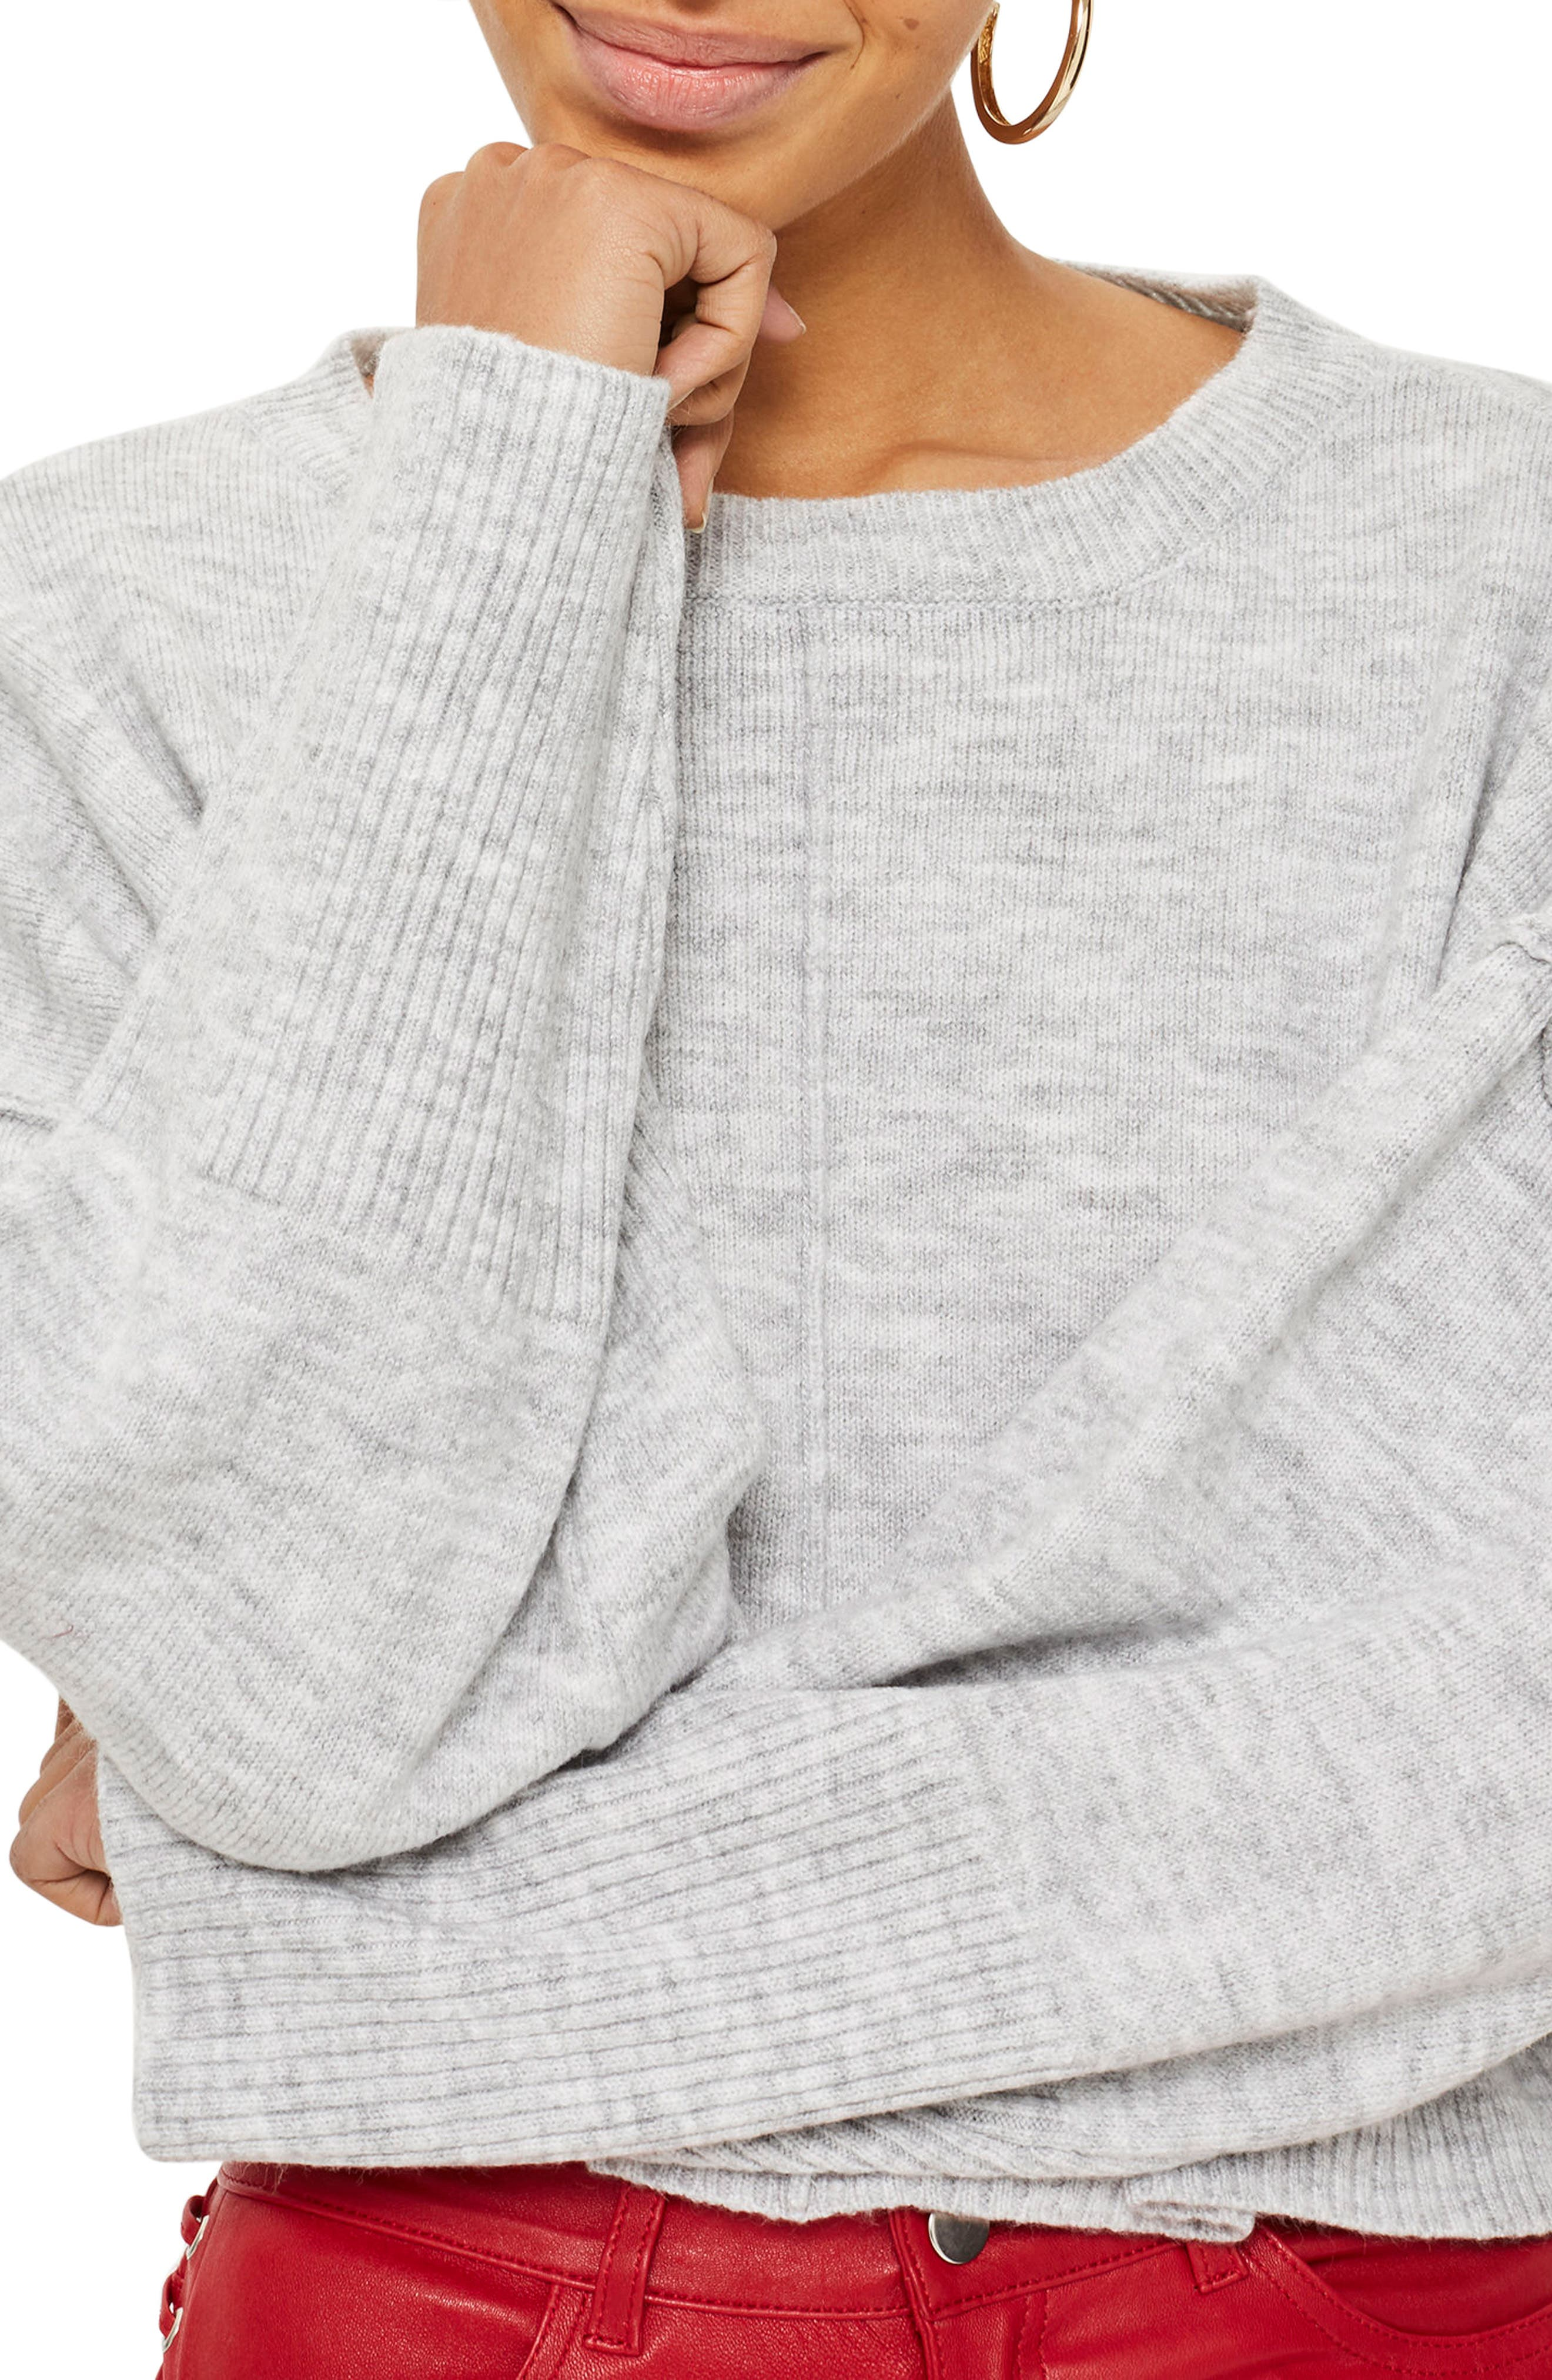 Wide Sleeve Crop Sweater,                             Main thumbnail 1, color,                             020